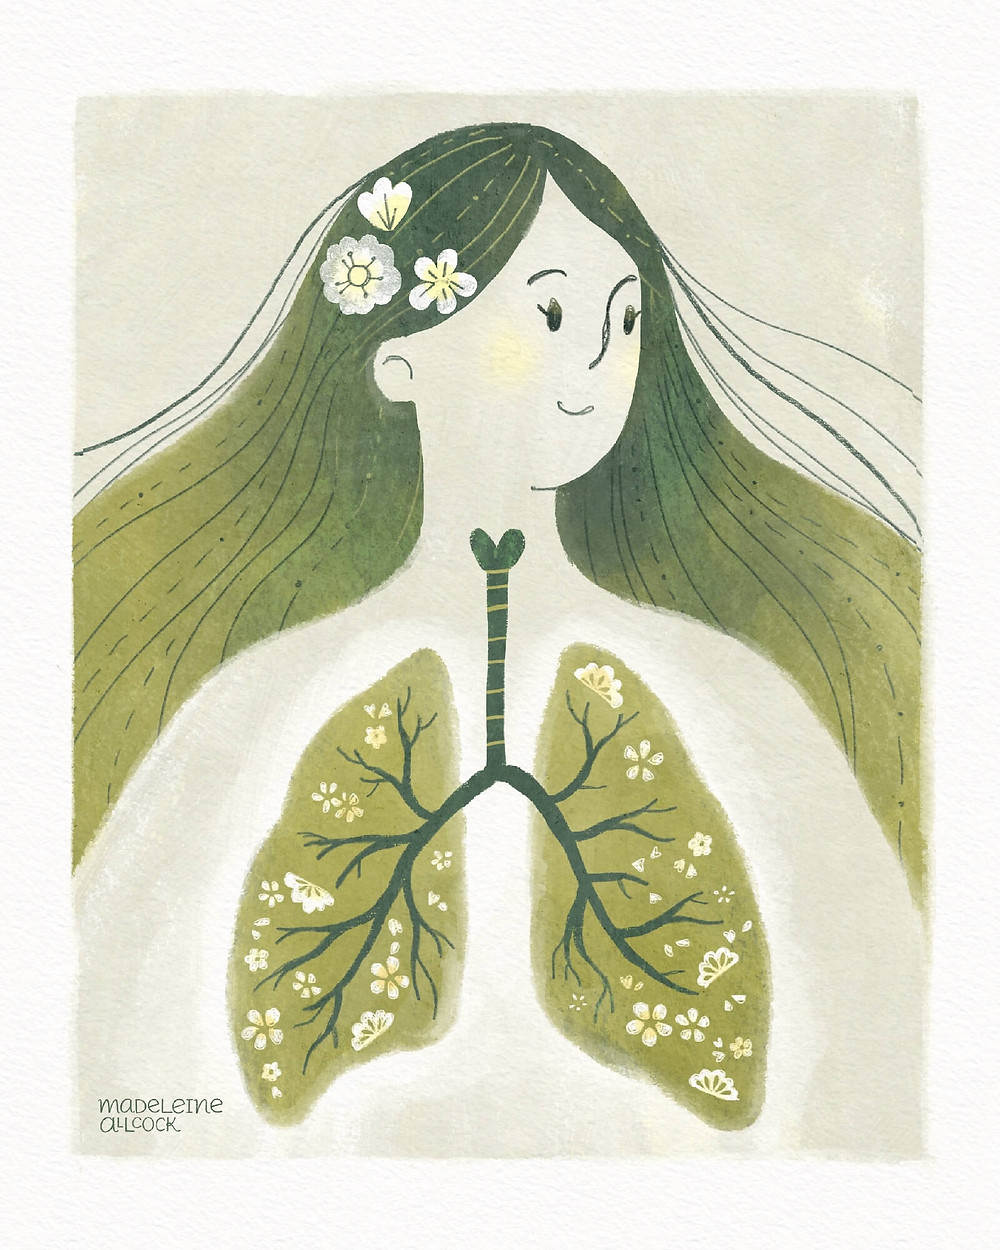 Illustration of a woman with green hair and lungs that look like trees